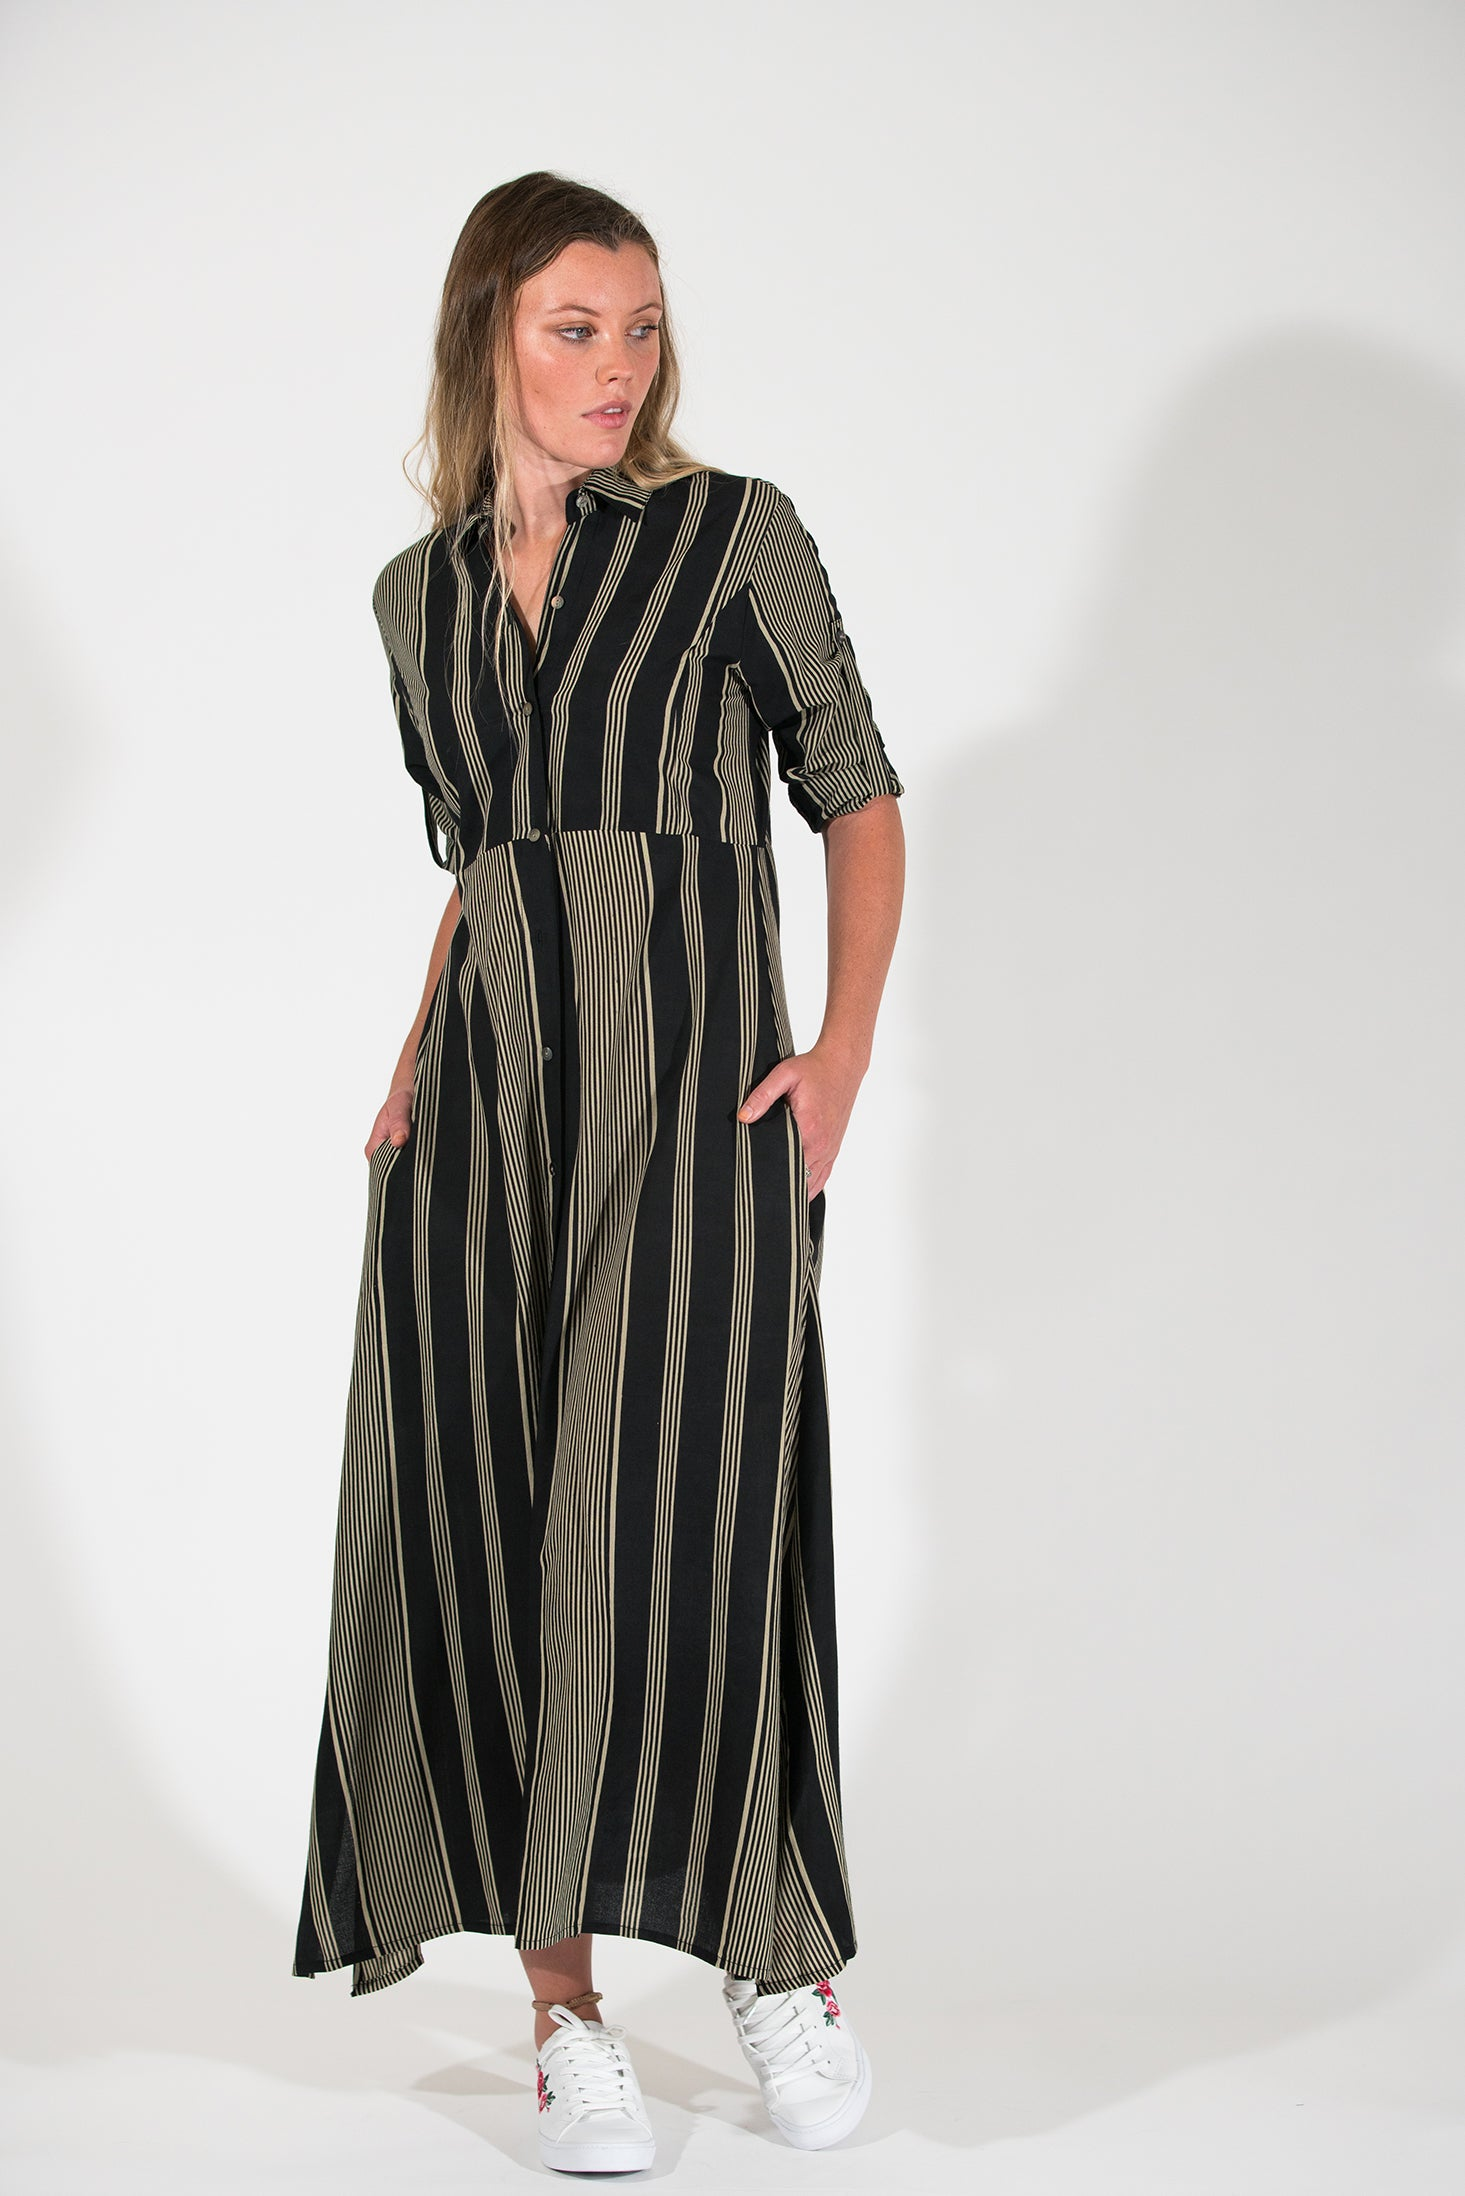 Evergreen Dress - Black/Bone Stripe